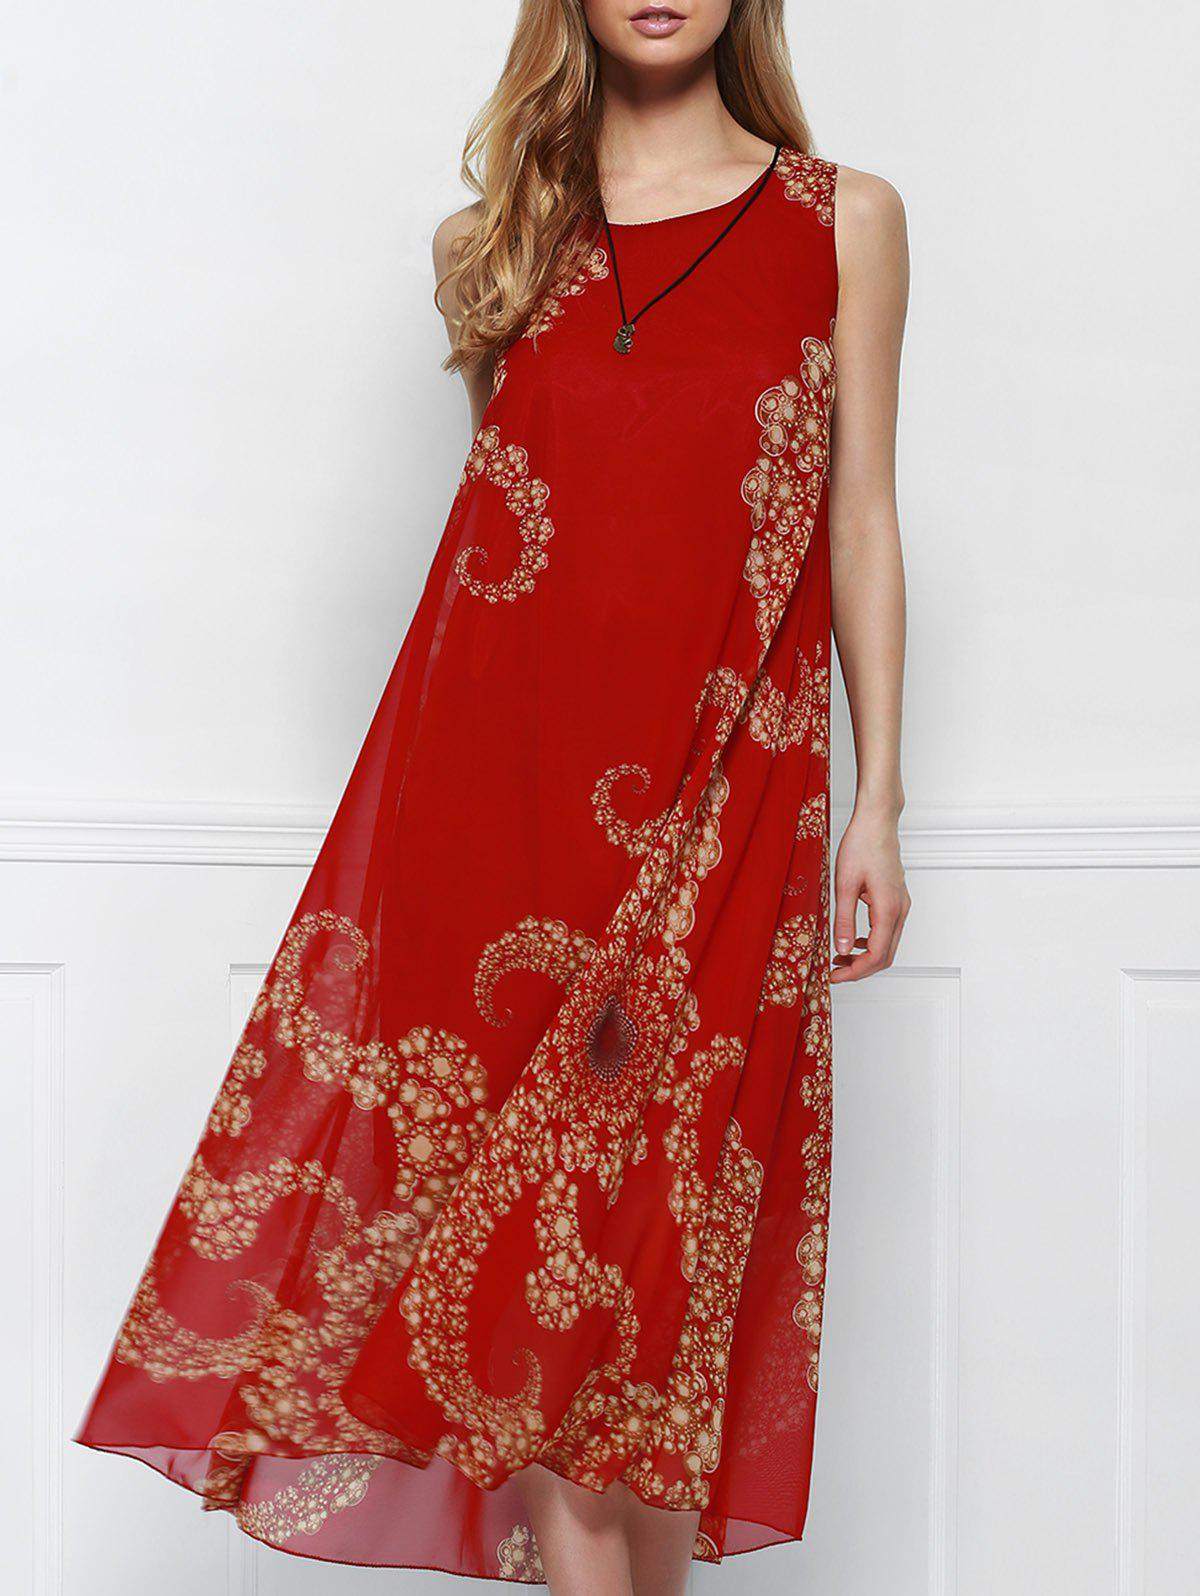 Bohemian Style Red Print Sleeveless Scoop Neck Beach Dress For Women - RED ONE SIZE(FIT SIZE XS TO M)